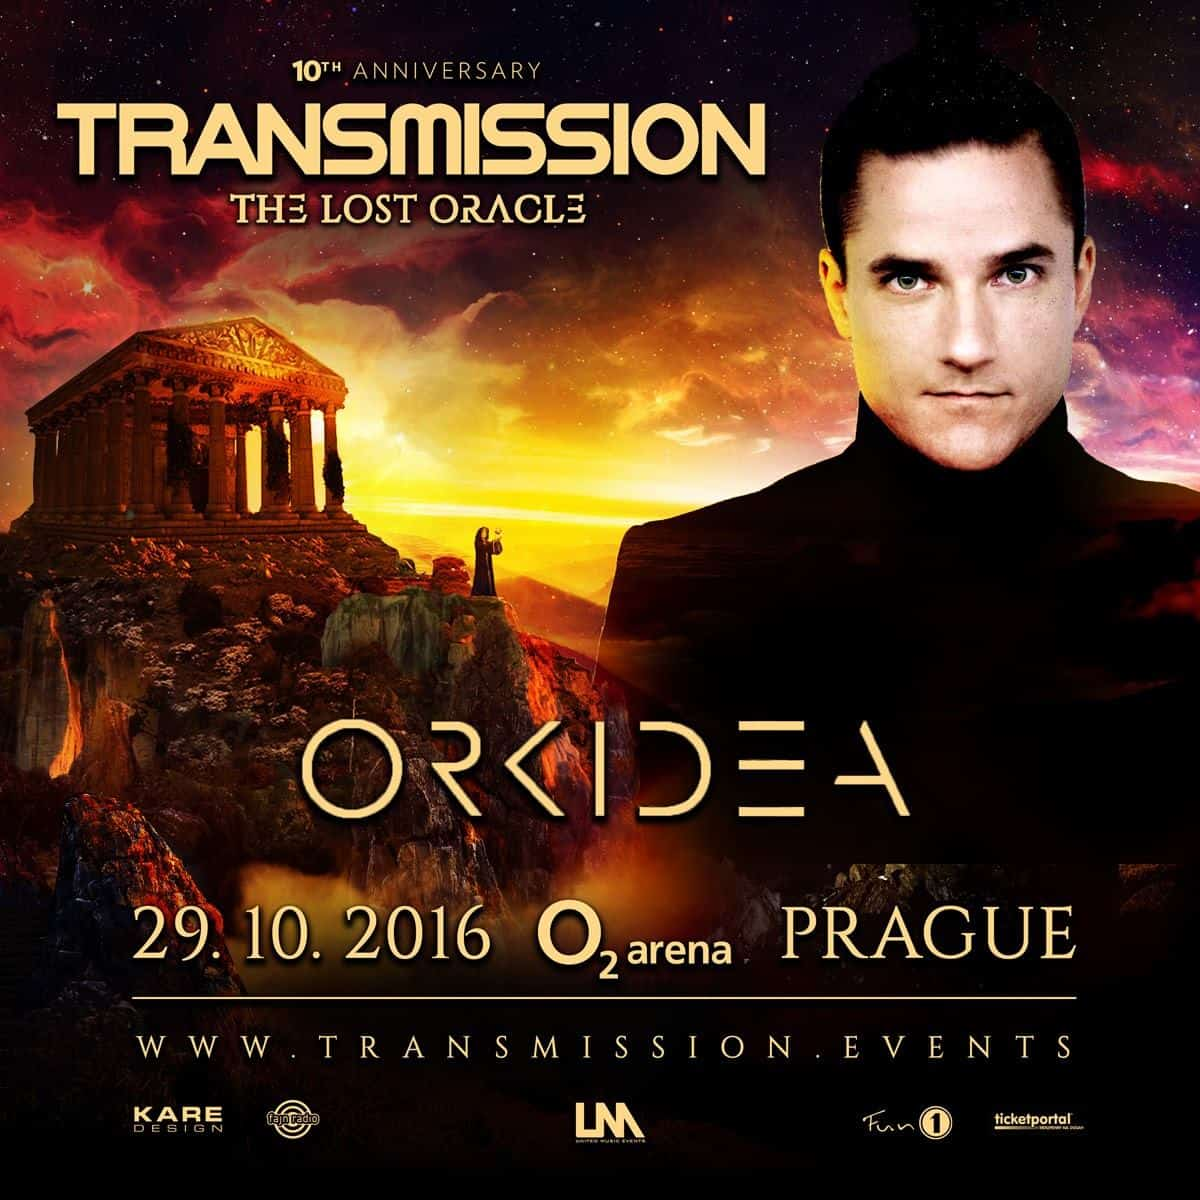 Orkidea live at Transmission - The Lost Oracle (29.10.2016) @ Prague, Czech Republic